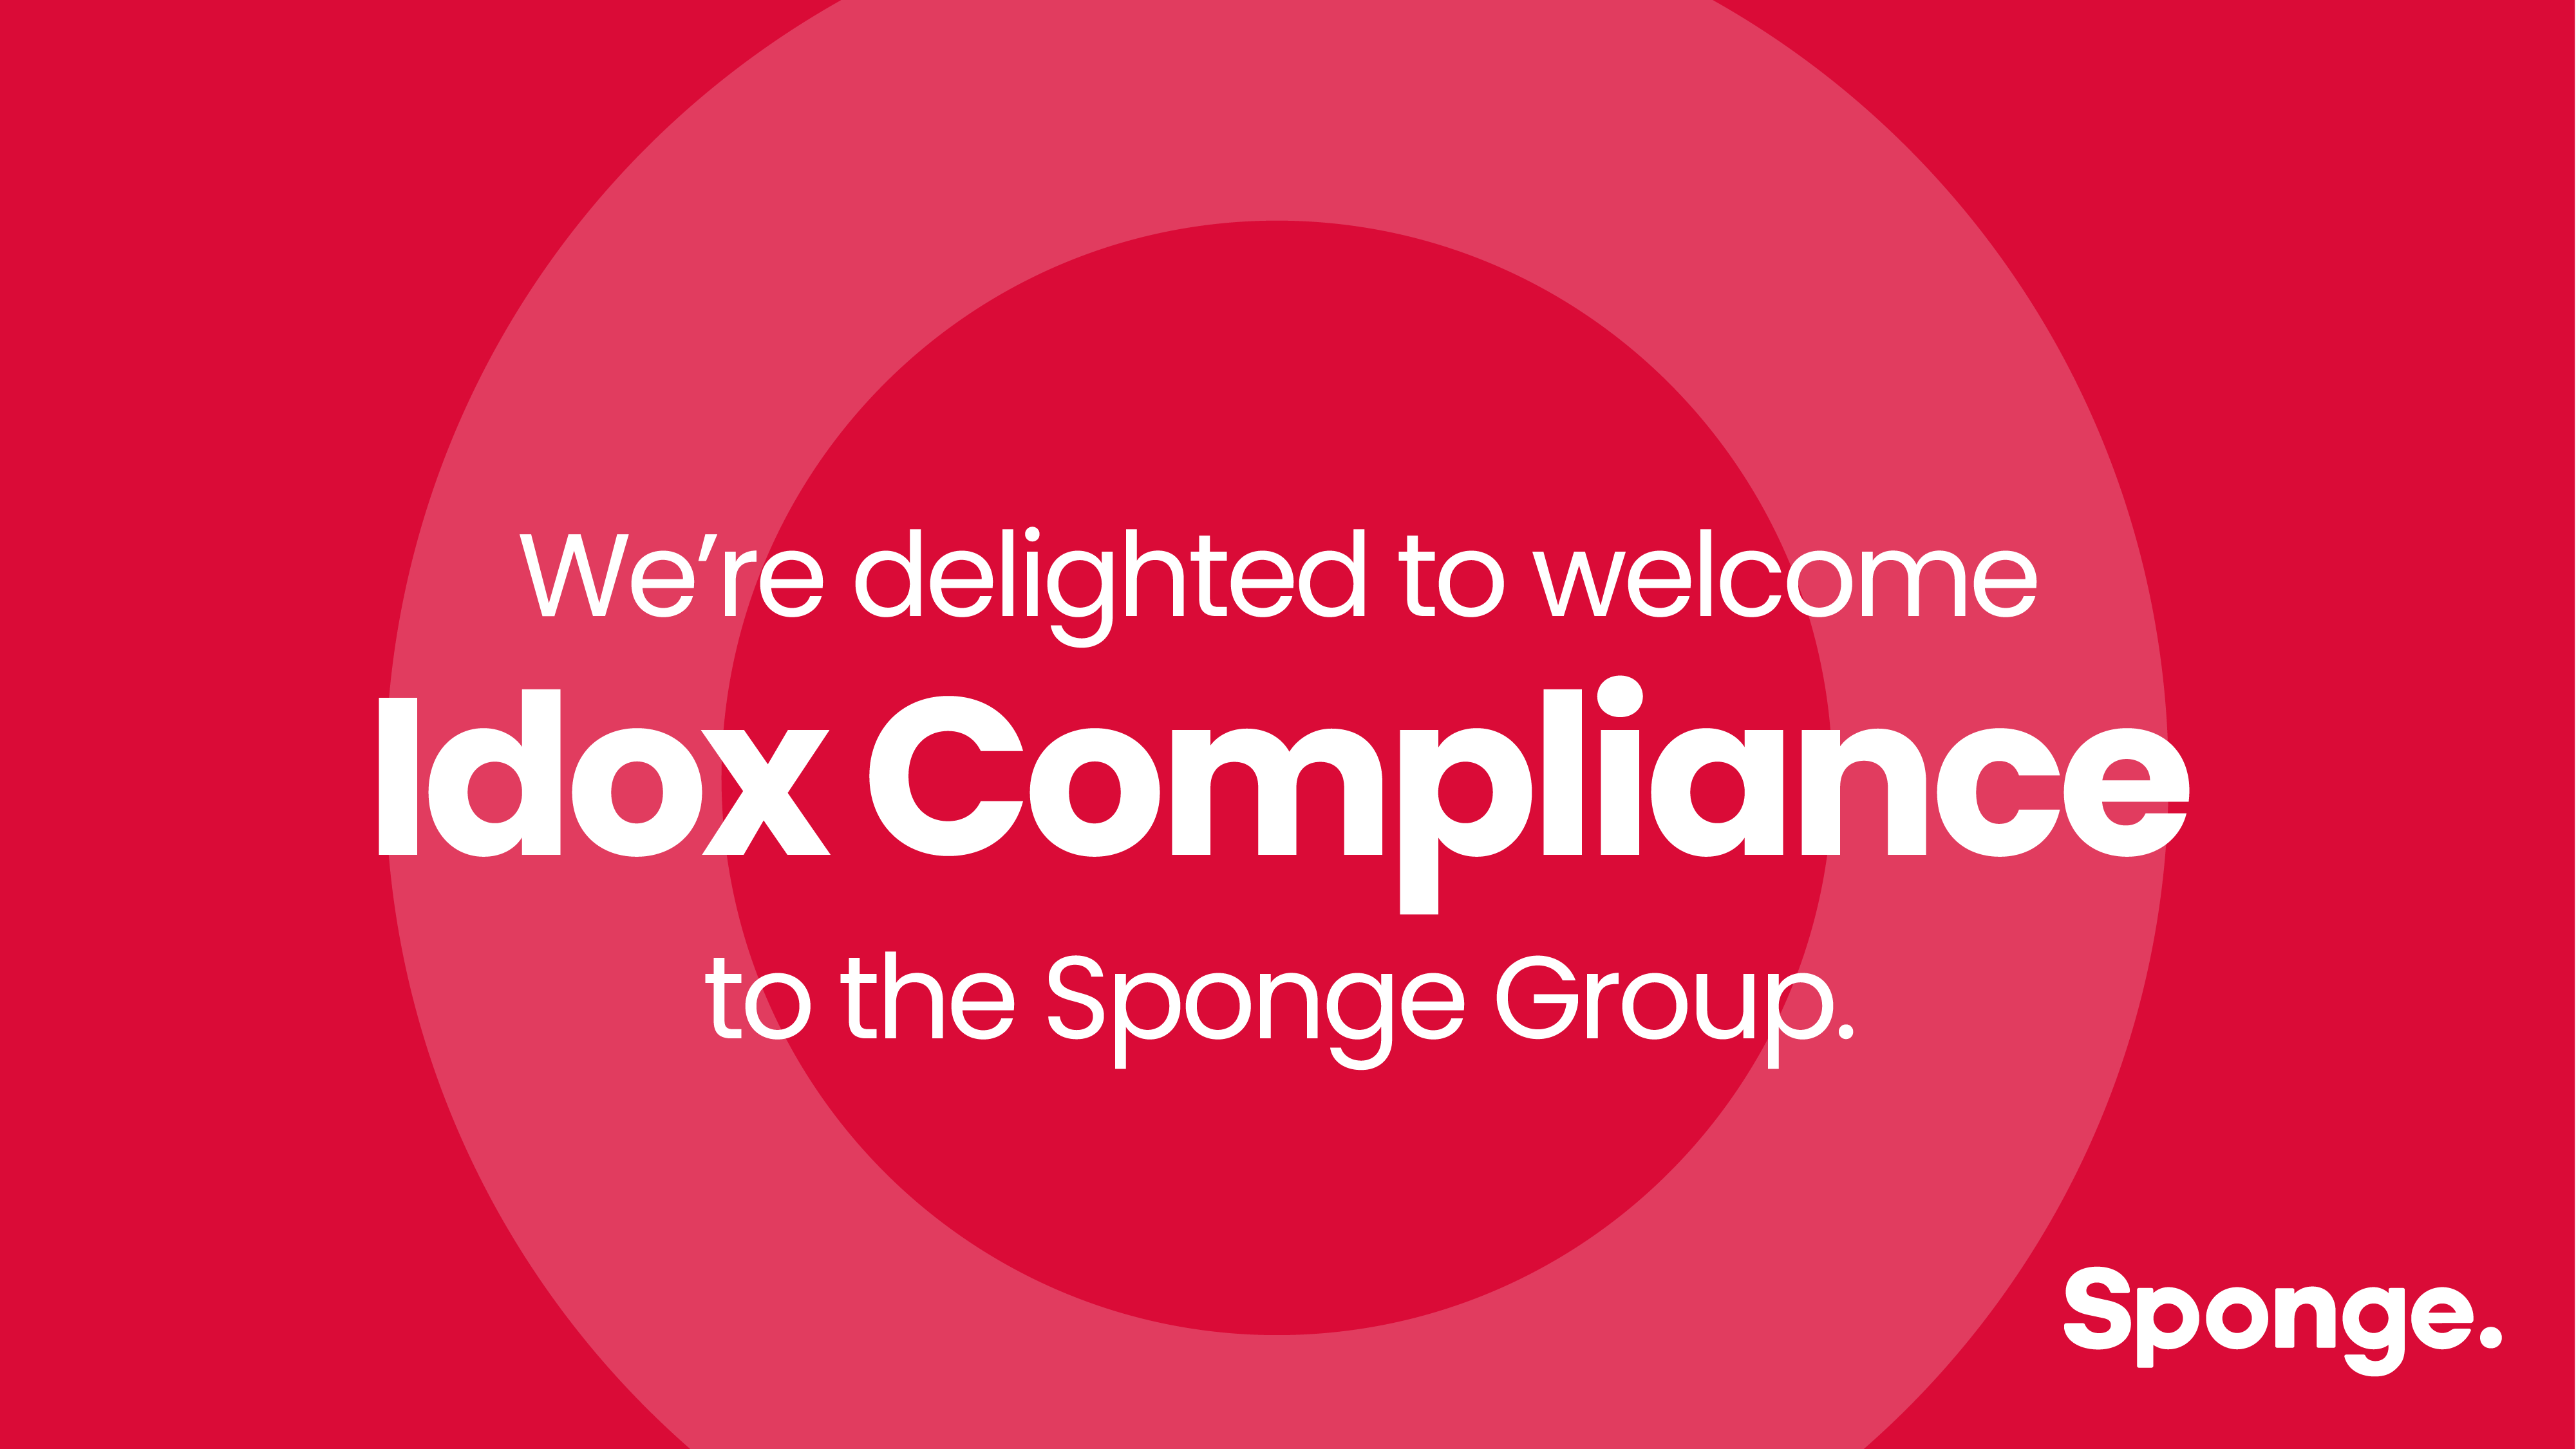 Sponge Group acquires Idox Compliance